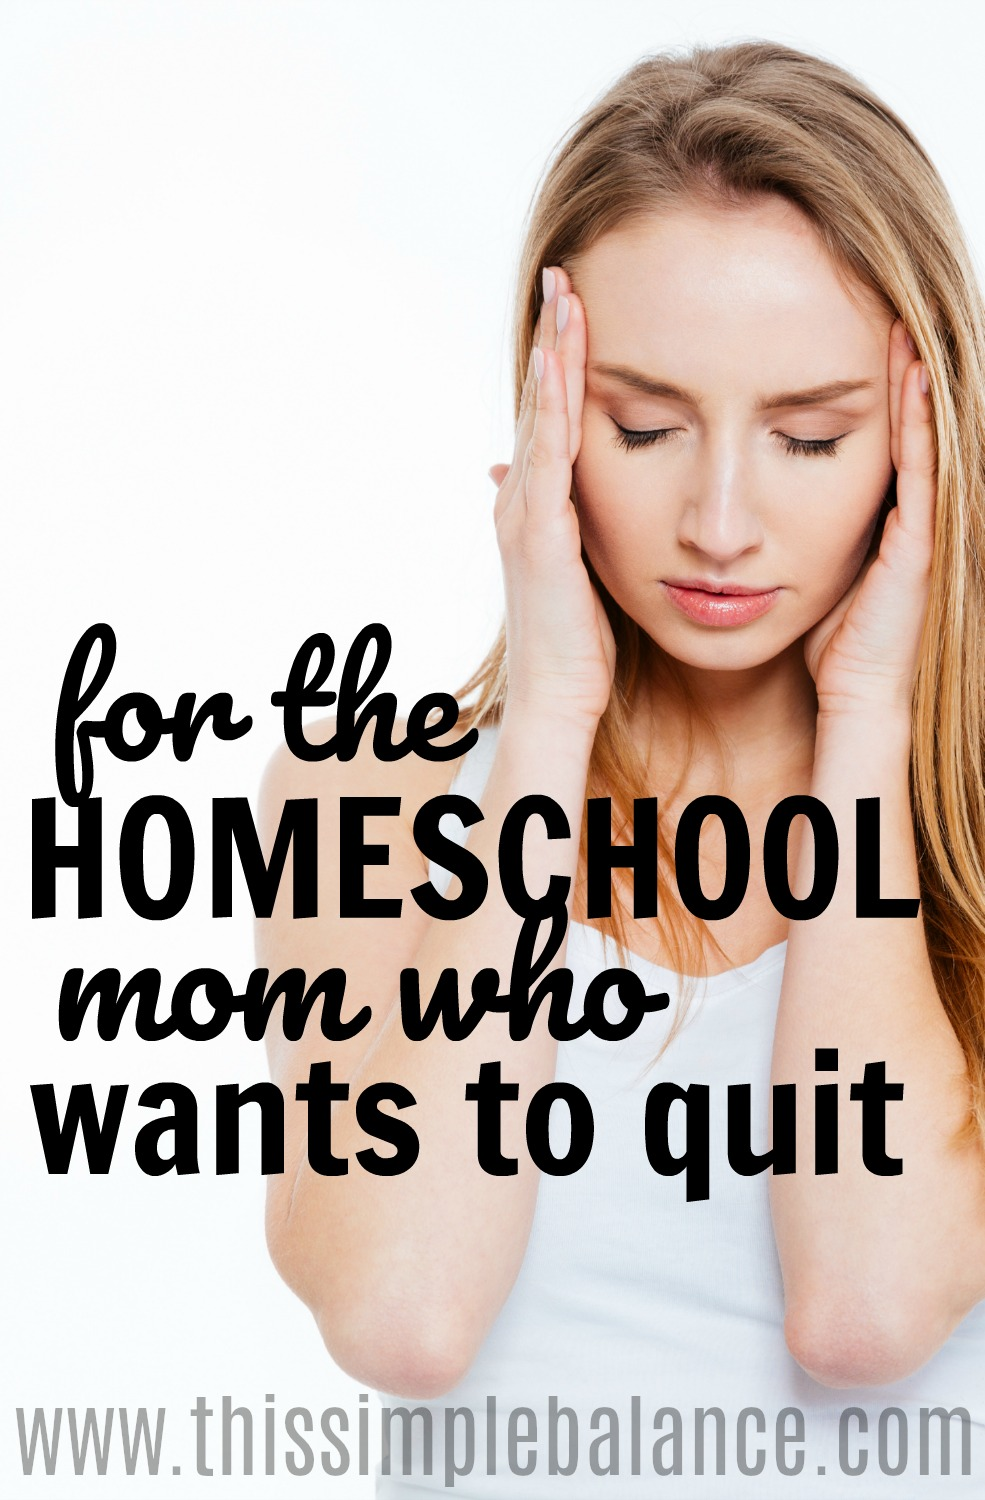 If you've ever thought of quitting homeschooling, this homeschool encouragement is for you.